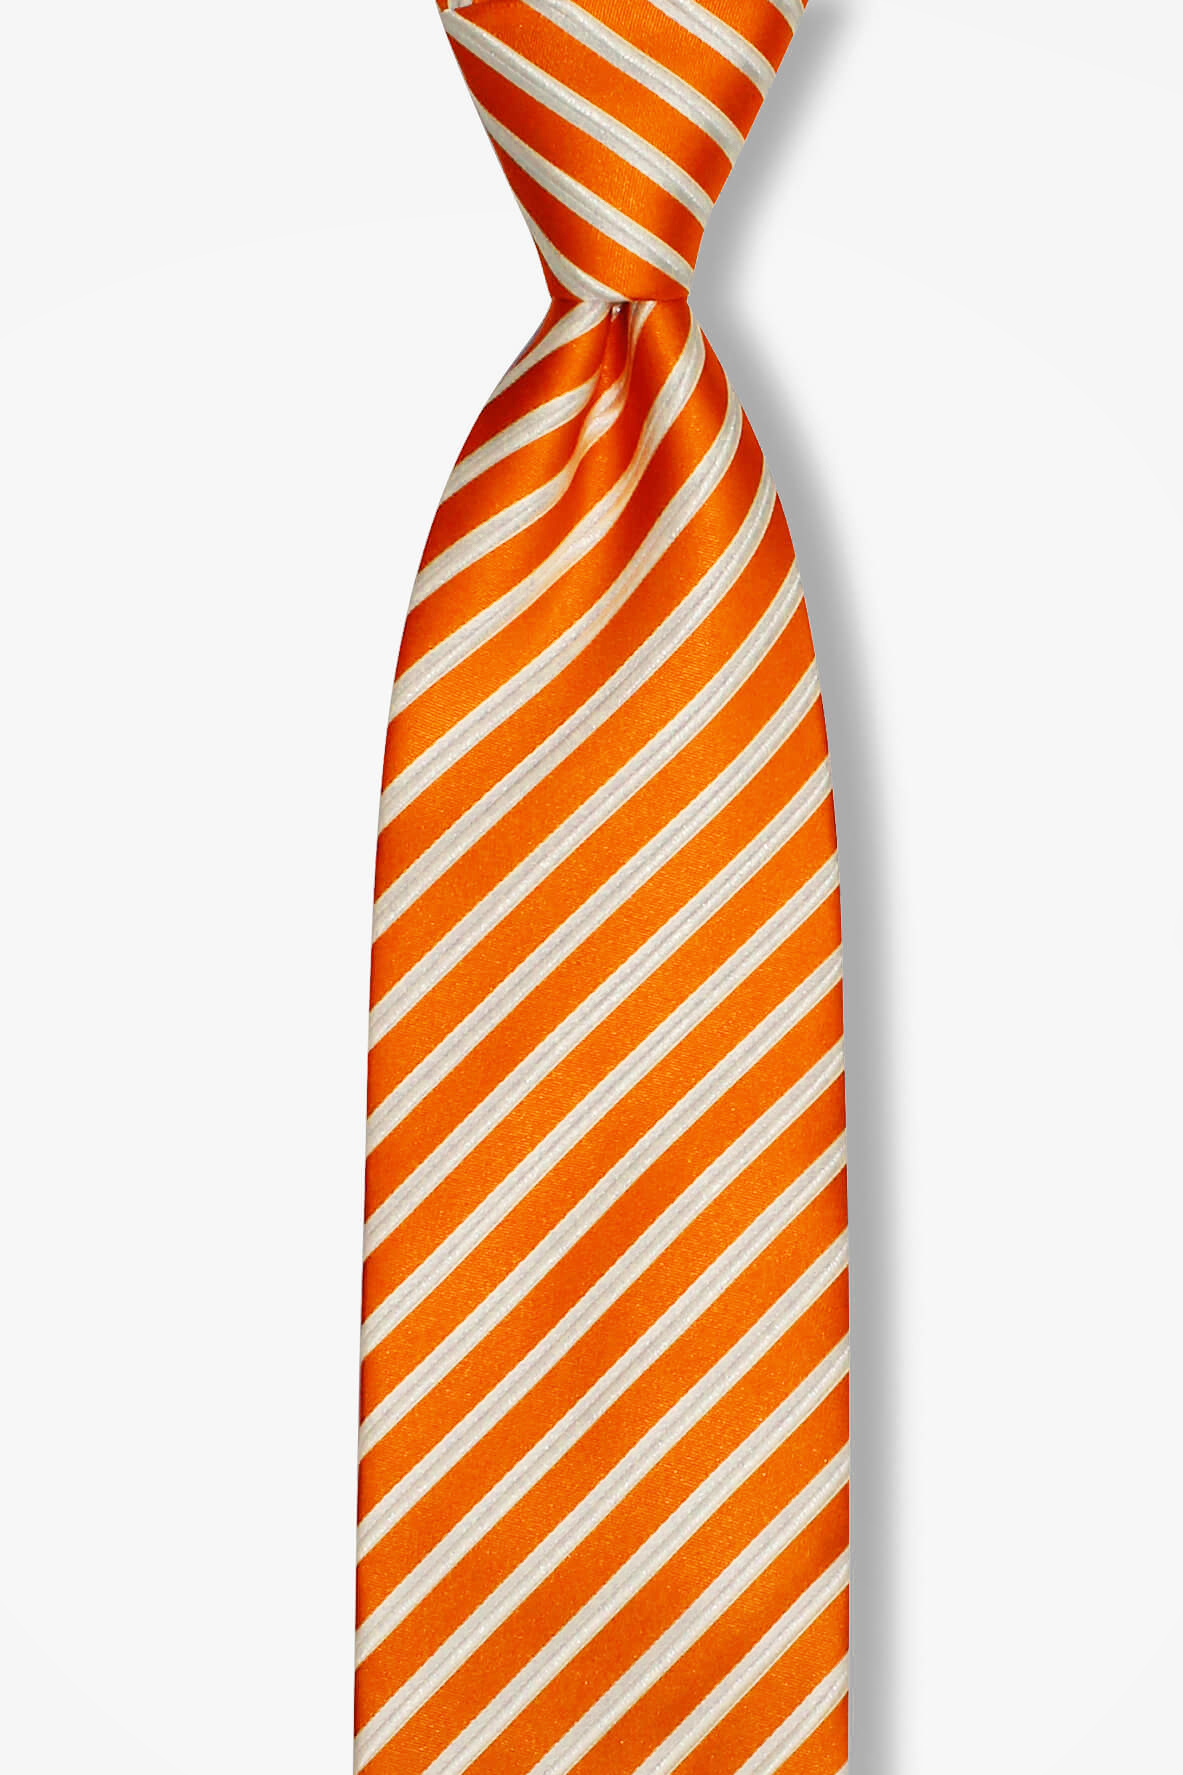 Racecar Orange Striped Pre-tied Tie, Tie, GoTie